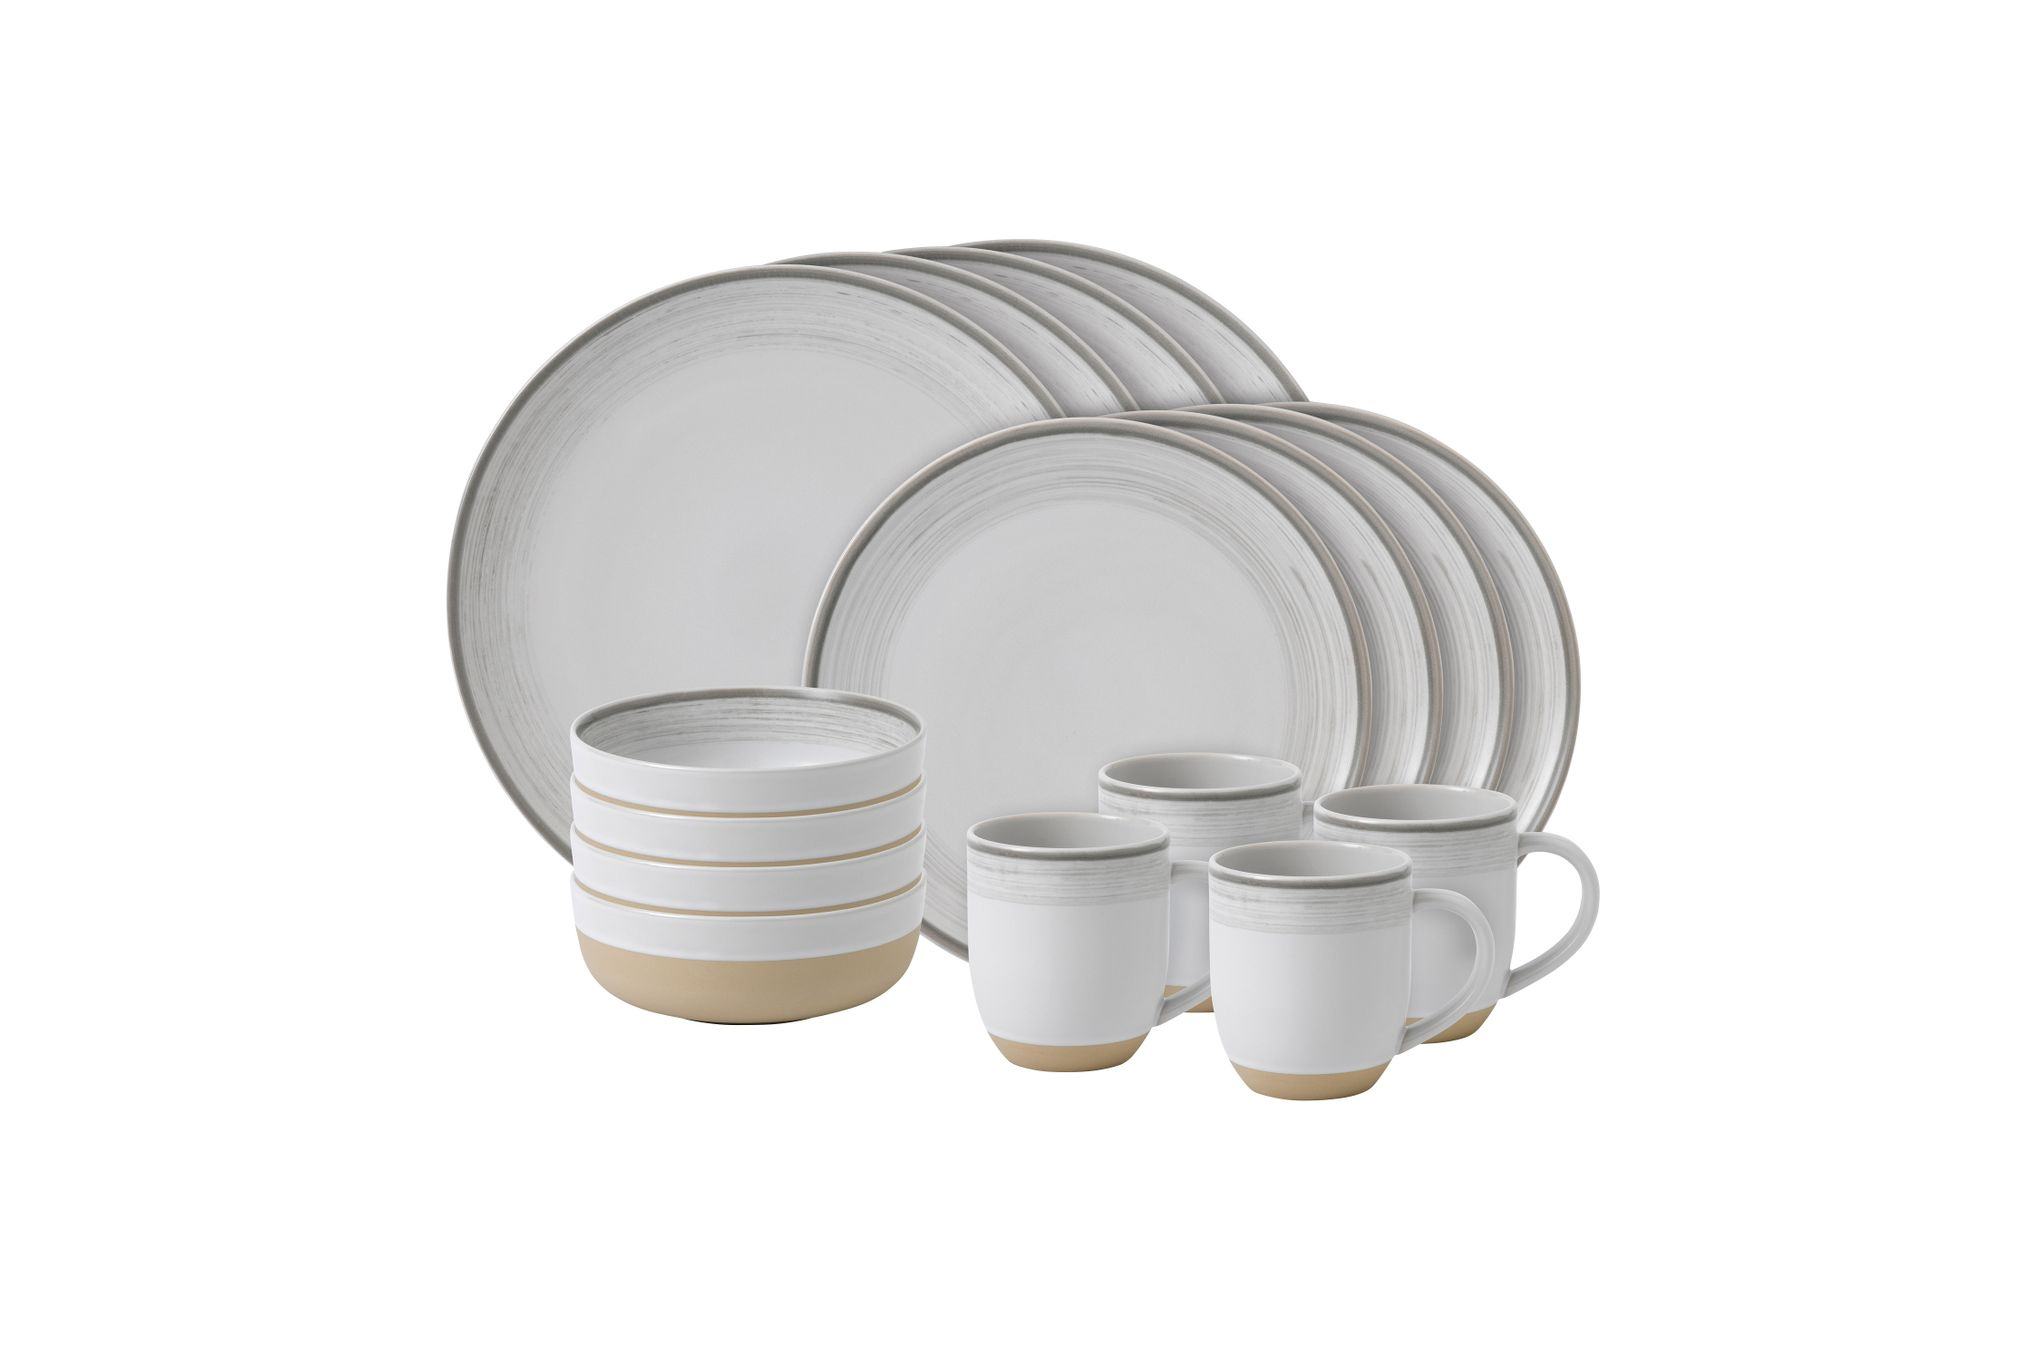 Ellen DeGeneres for Royal Doulton Brushed Glaze Sets 16 Piece Set White thumb 1